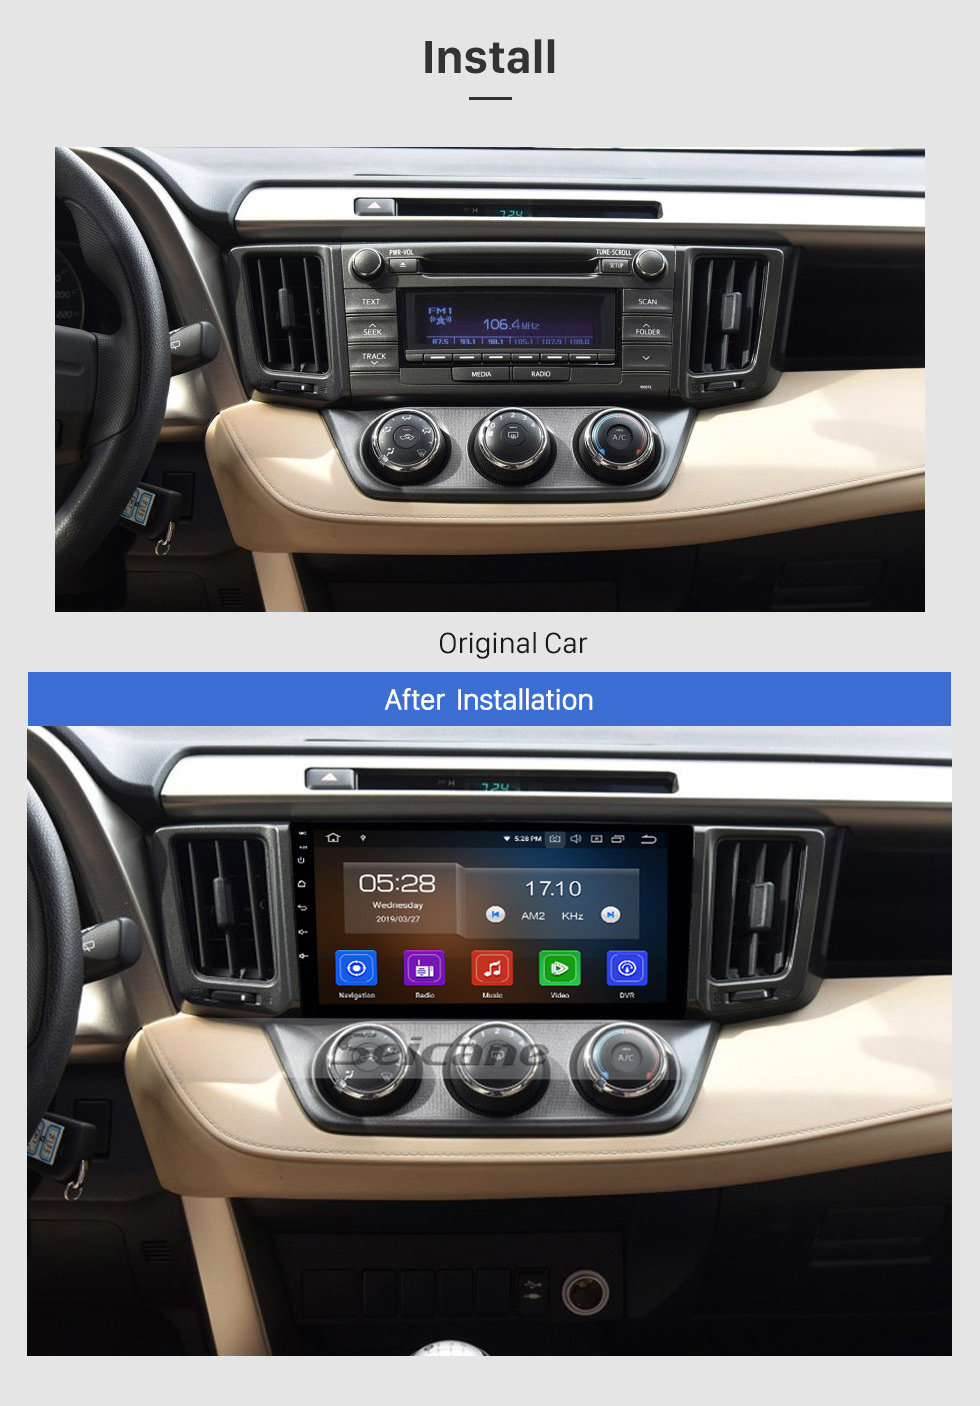 Seicane 2013-2018 Toyota RAV4 Left hand driving Android 9.0 9 inch GPS Navigation HD Touchscreen Radio WIFI Bluetooth USB AUX support DVD Player SWC 1080P Rearview Camera OBD TPMS Carplay